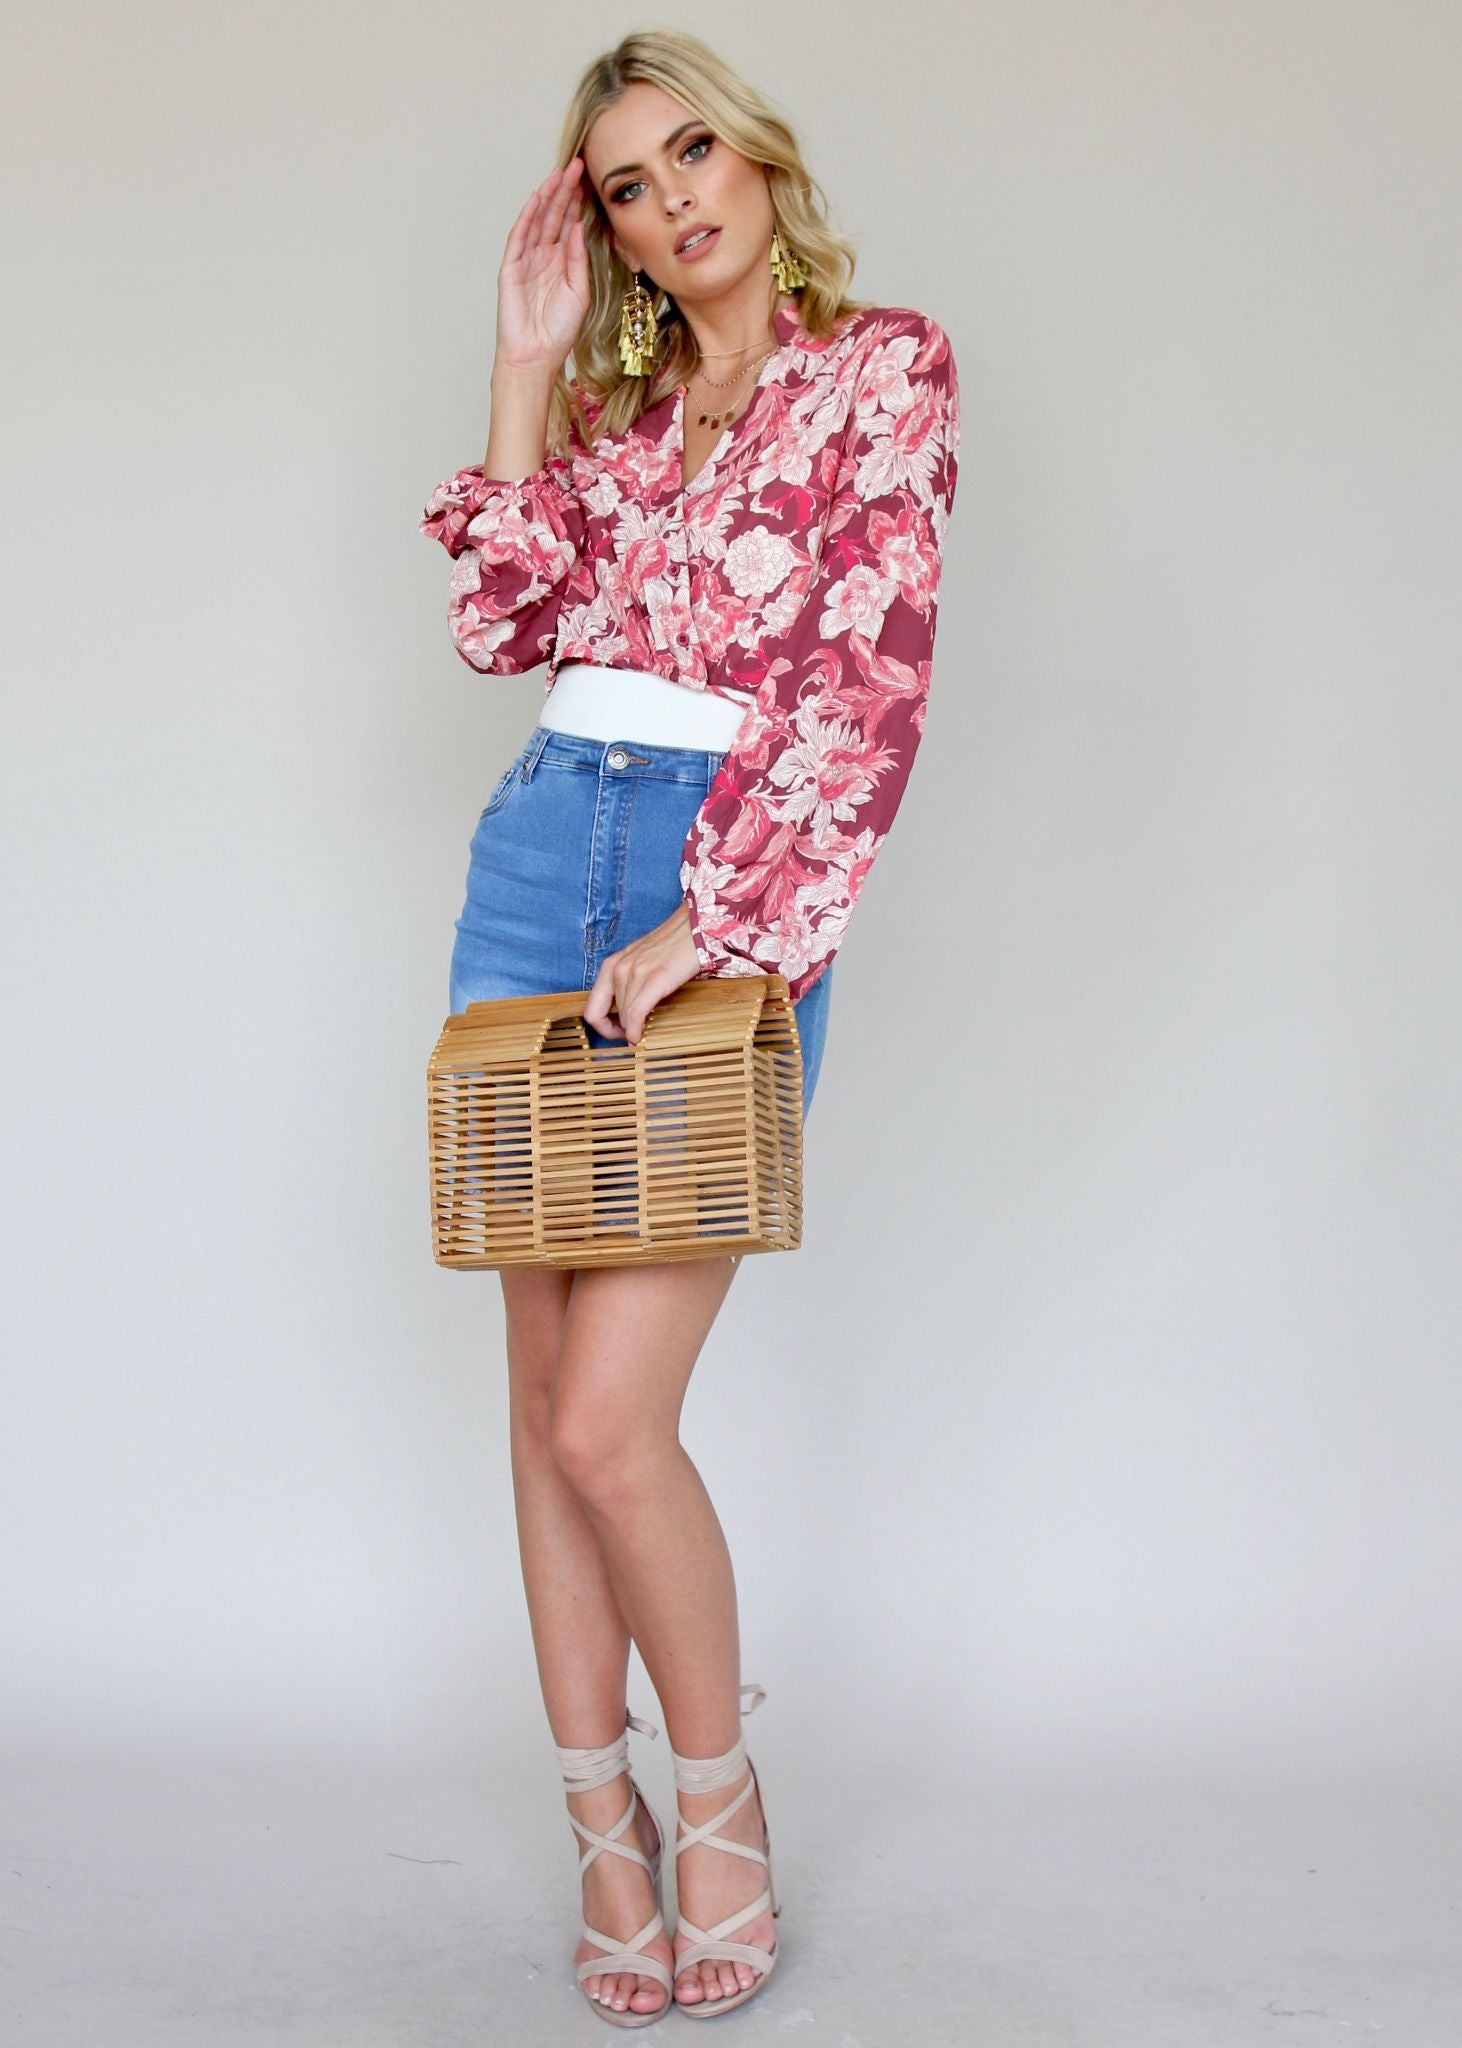 Sleevin' Around Blouse - Flora